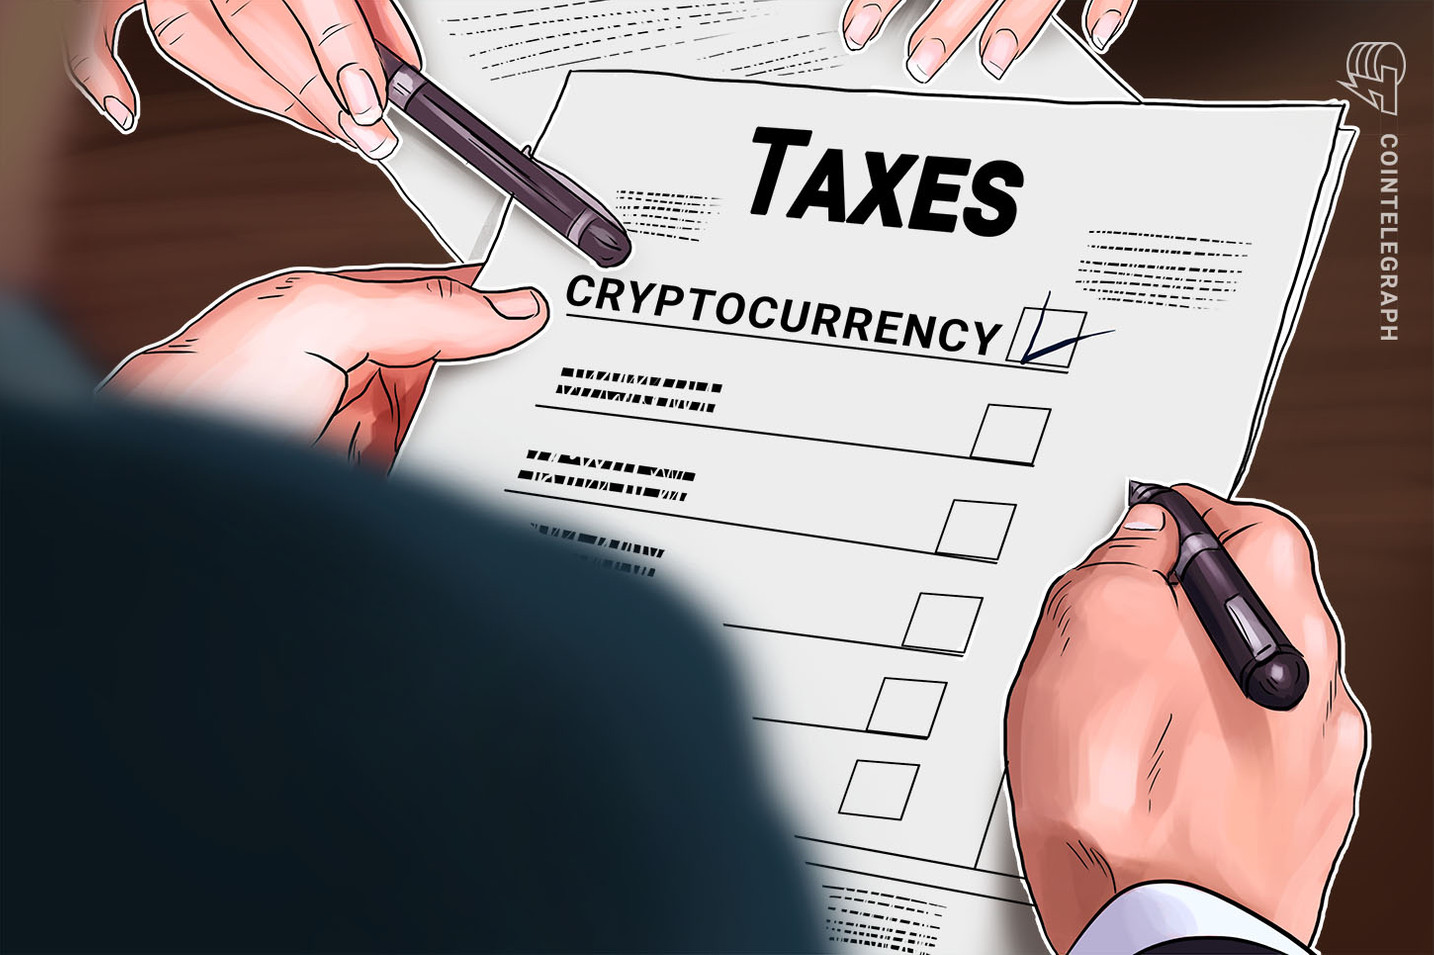 New Hampshire's Second Bill to Accept Bitcoin as Tax Payment Fails